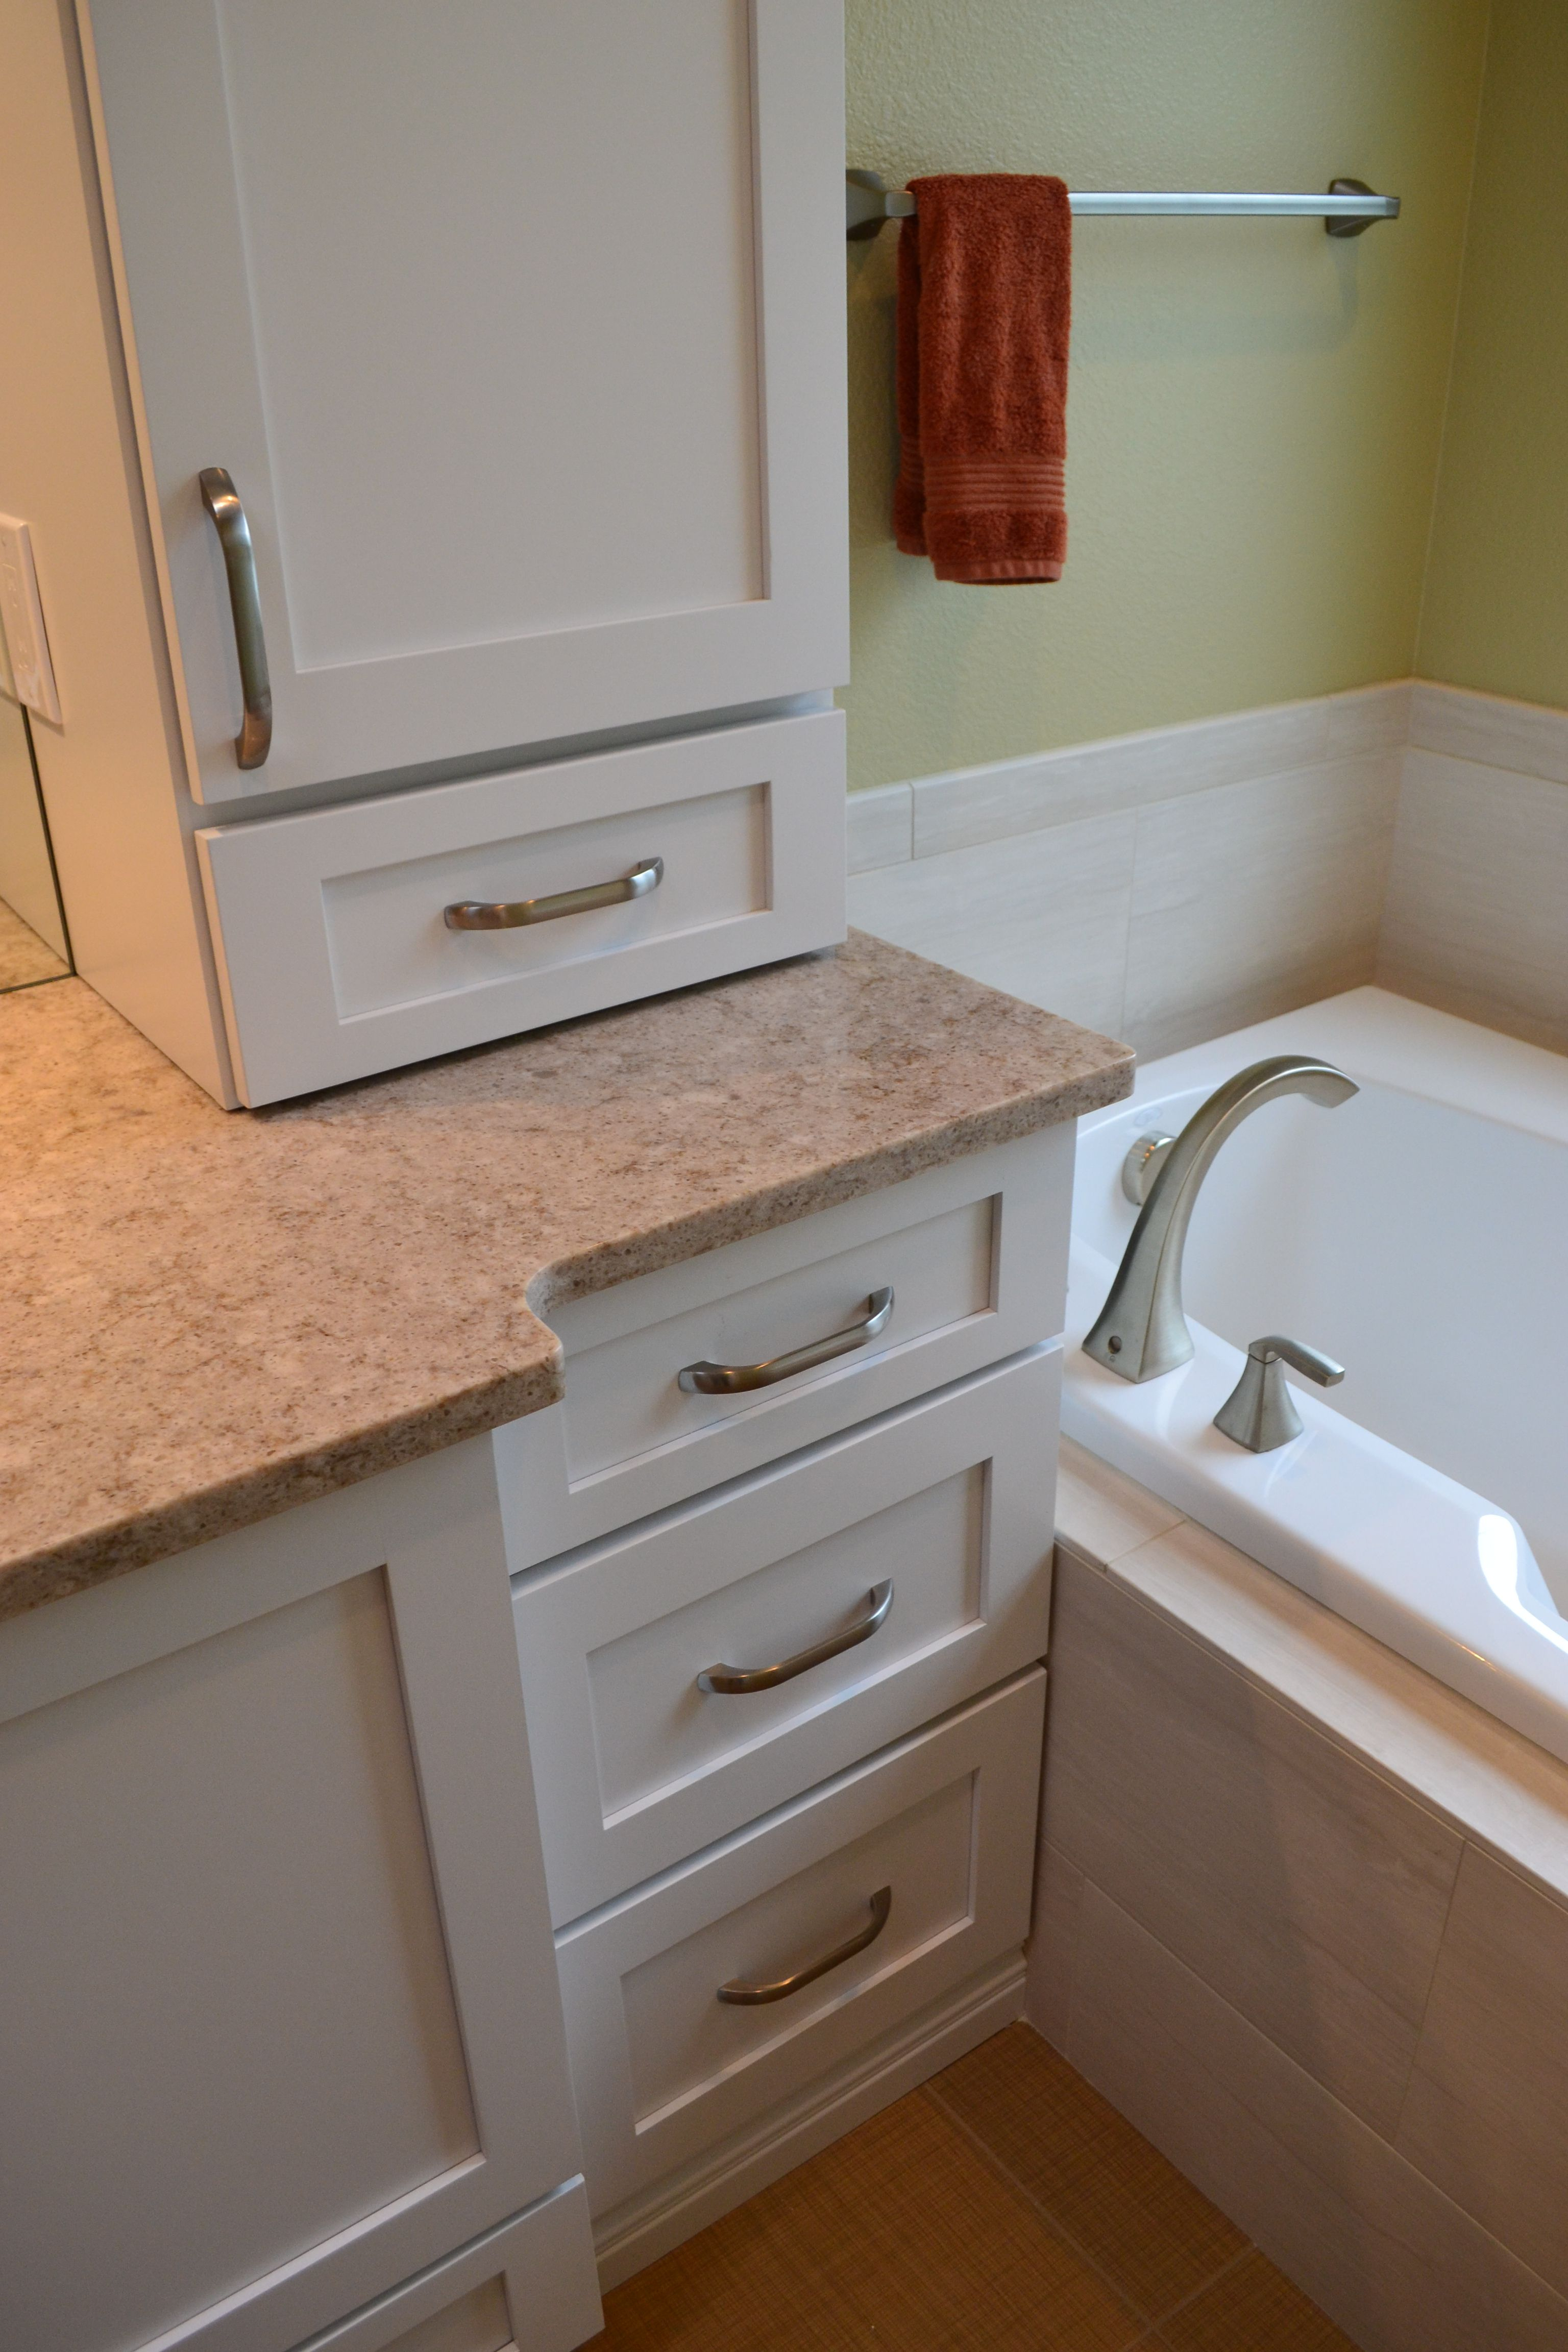 Bathroom Cabinets Next Vanity Next To Tub Company Projects Pinterest Tubs And Vanities